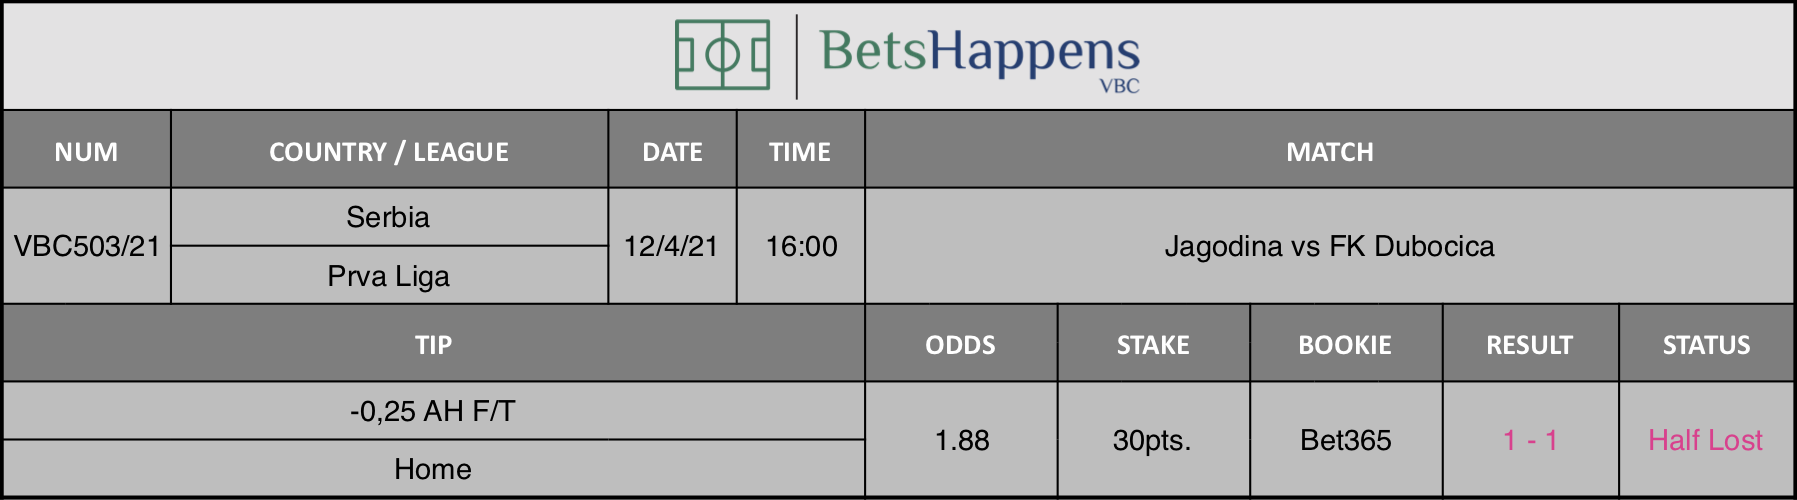 Results of our tip for the Jagodina vs FK Dubocica match where -0,25 AH F/T Home is recommended.